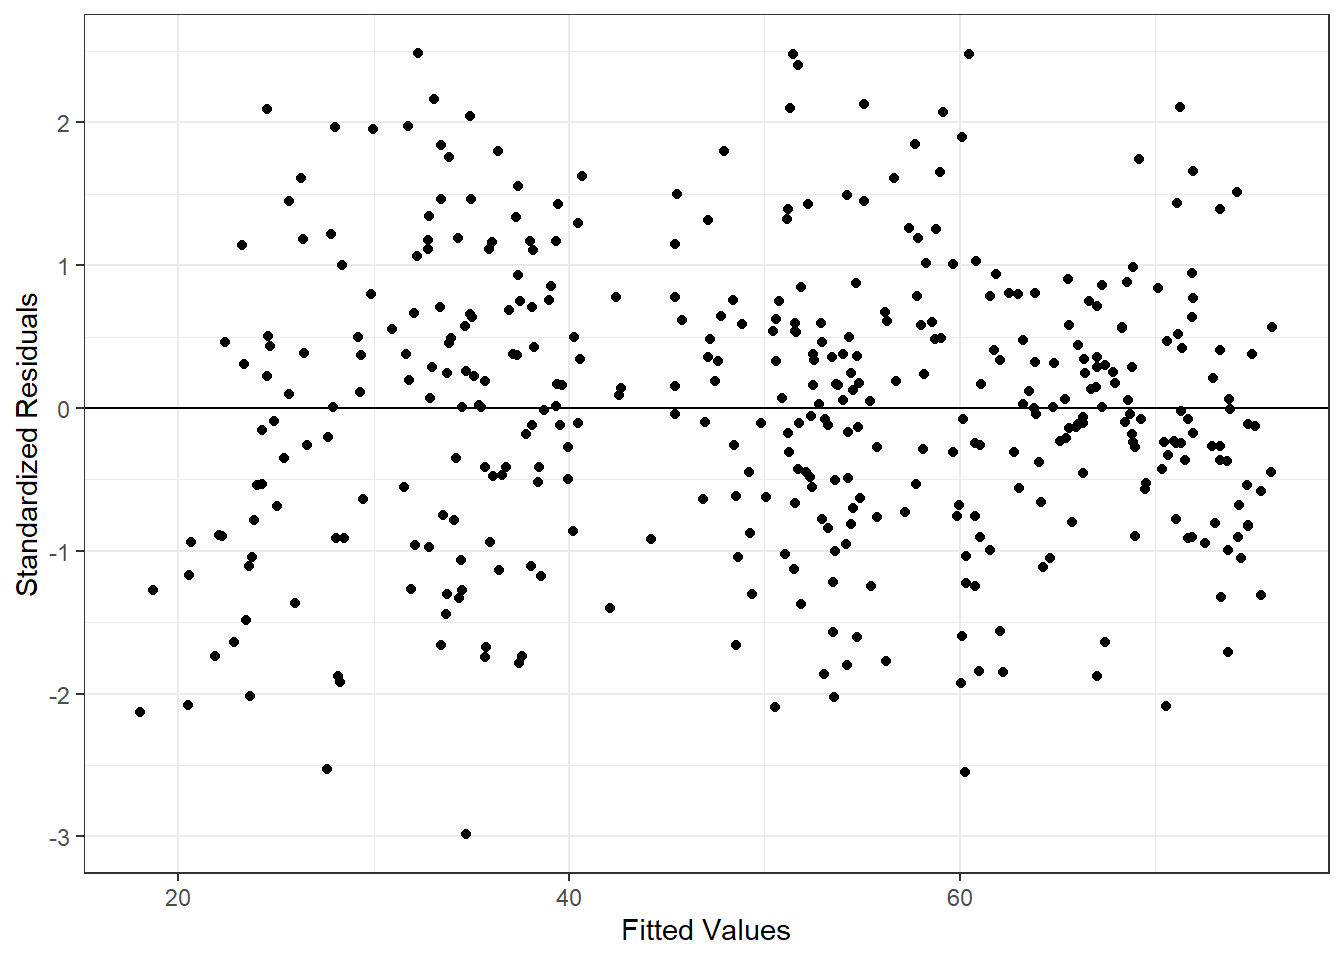 Fitted vs. Residual Plot